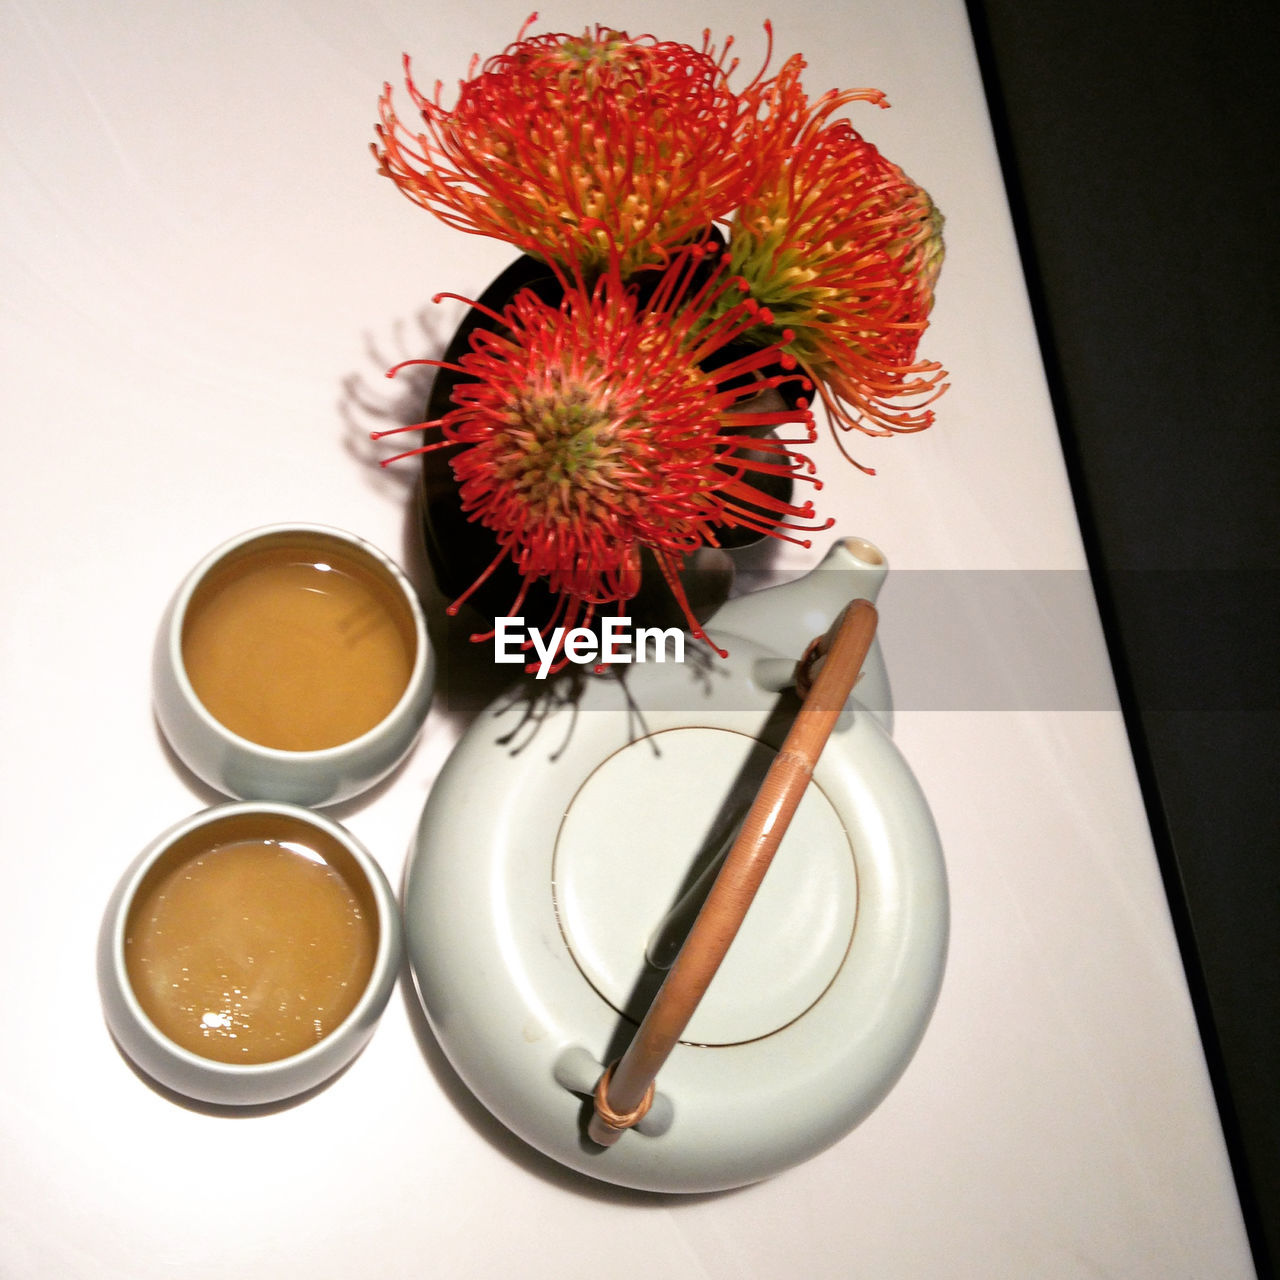 food and drink, table, freshness, high angle view, plate, no people, coffee cup, indoors, food, drink, refreshment, flower, close-up, sweet food, white background, day